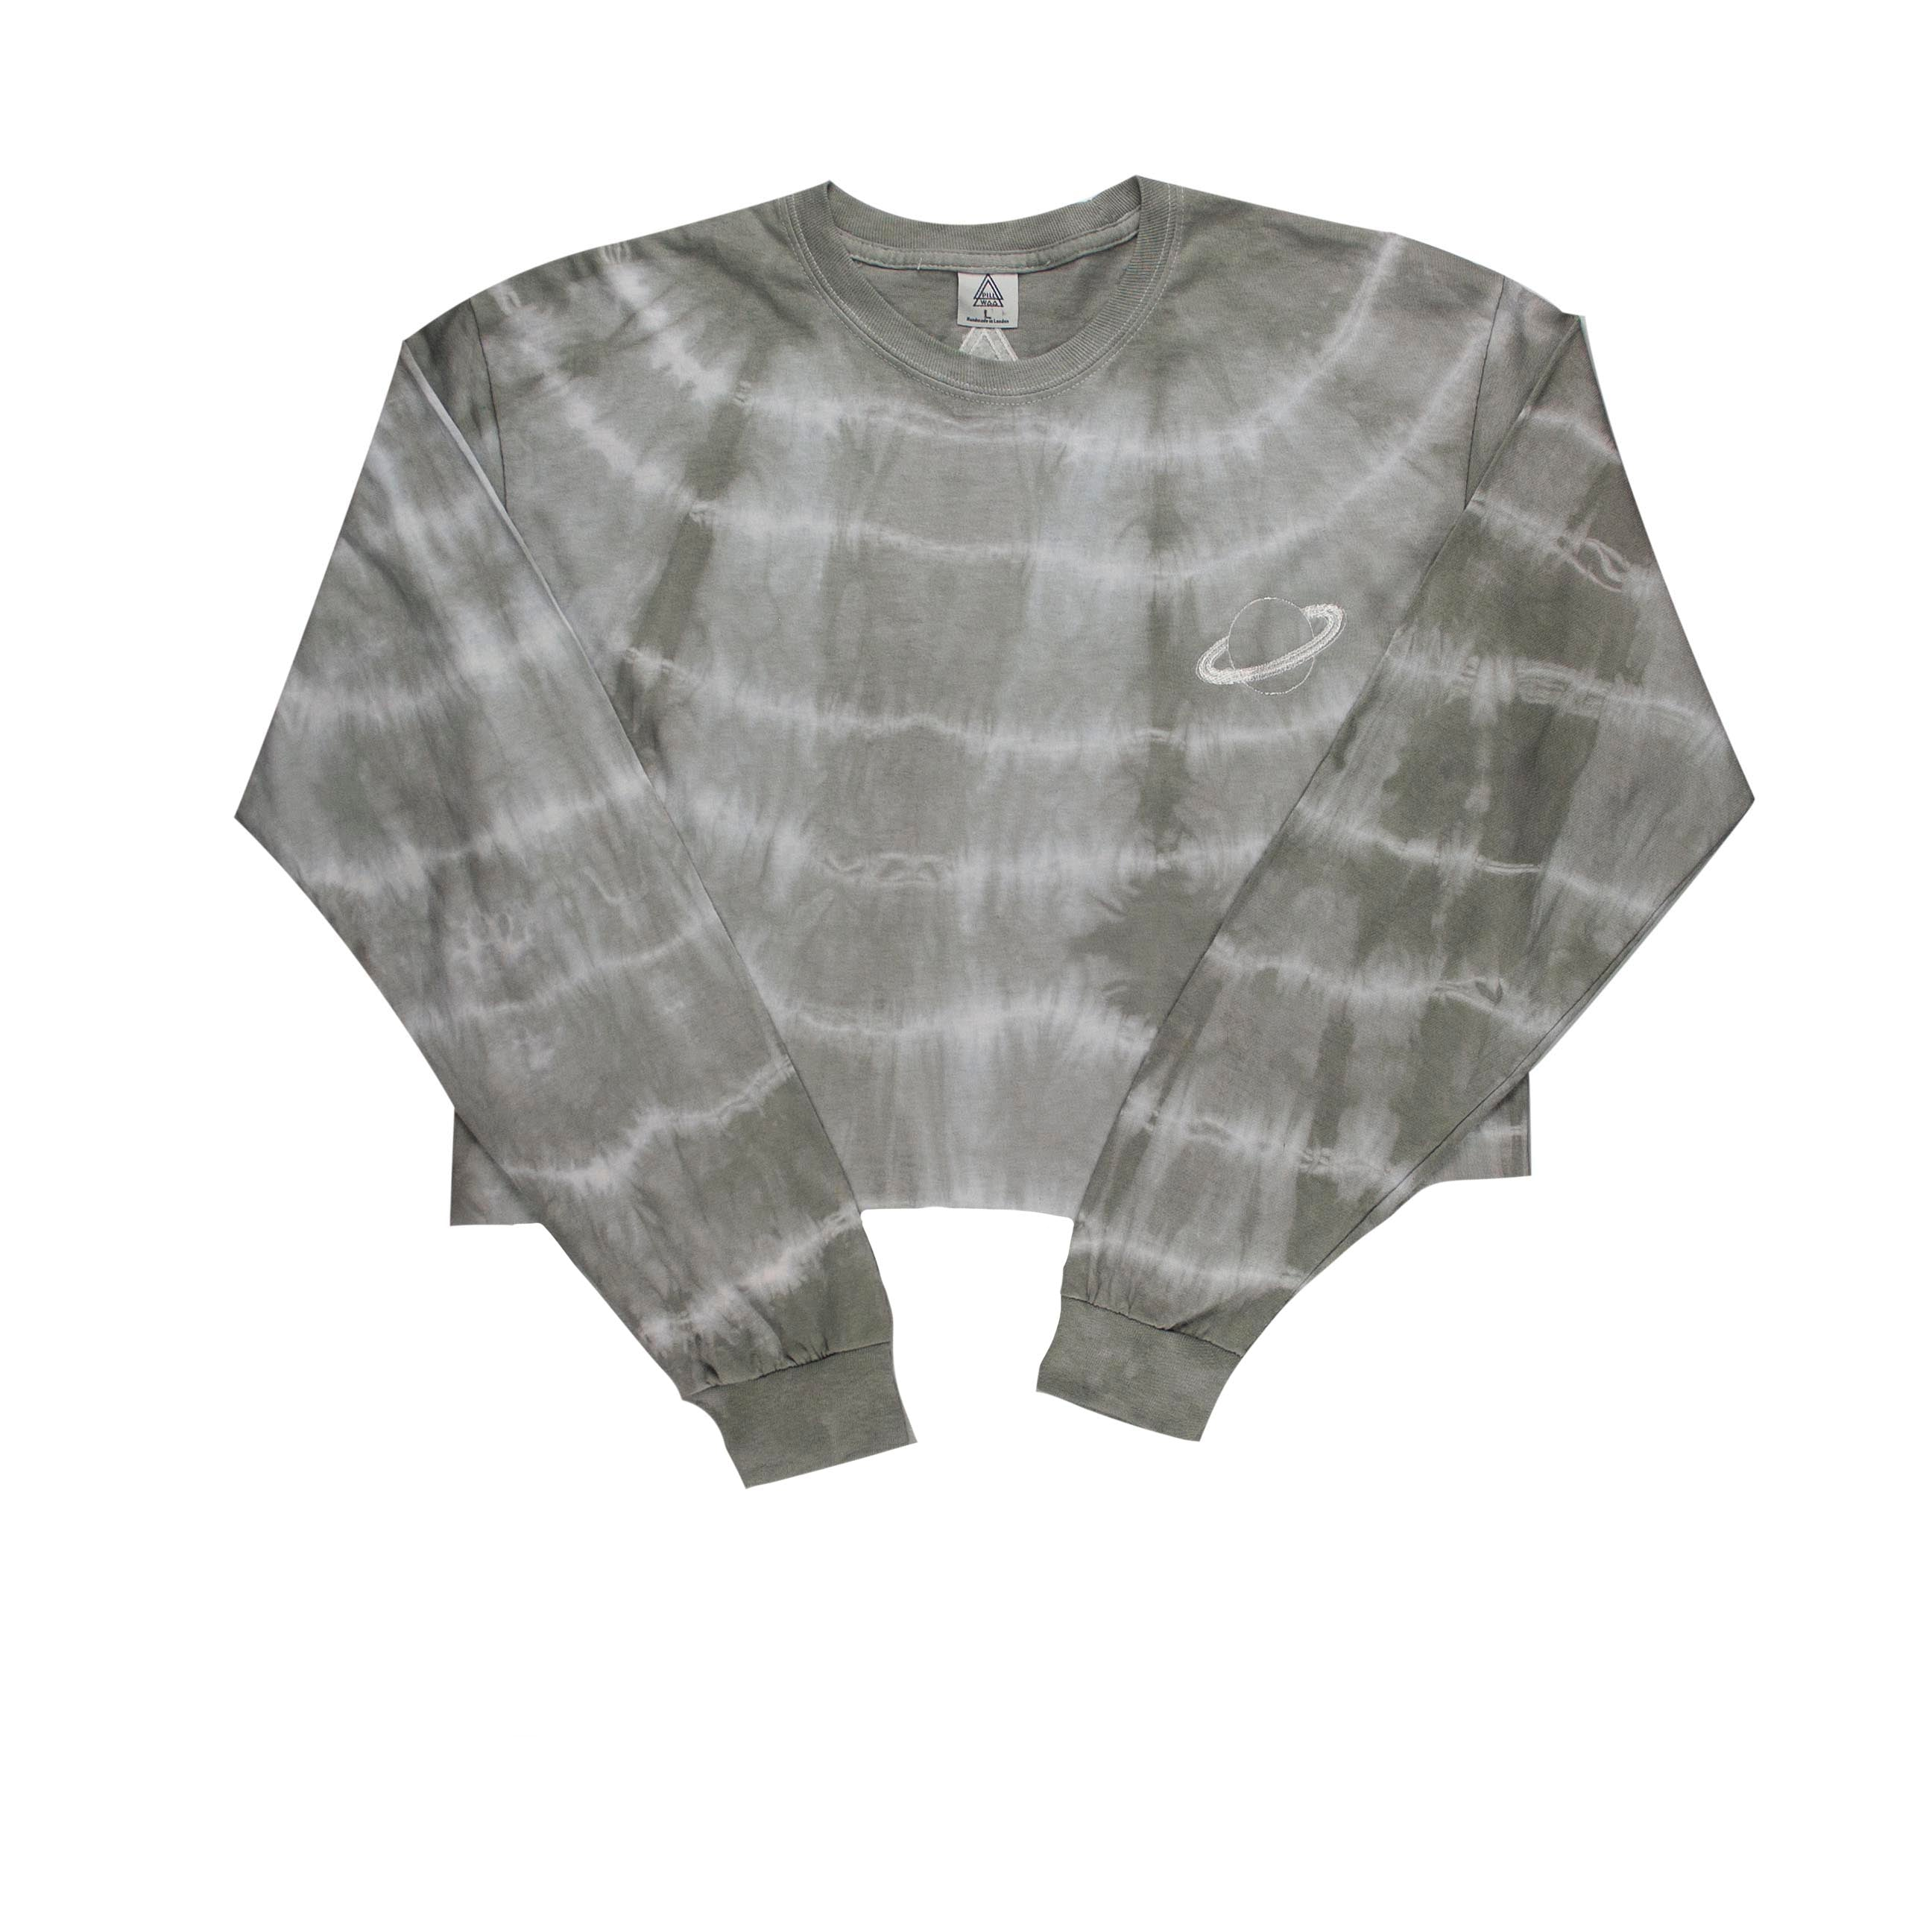 Planet C4 Top (Grey Tie Dye)